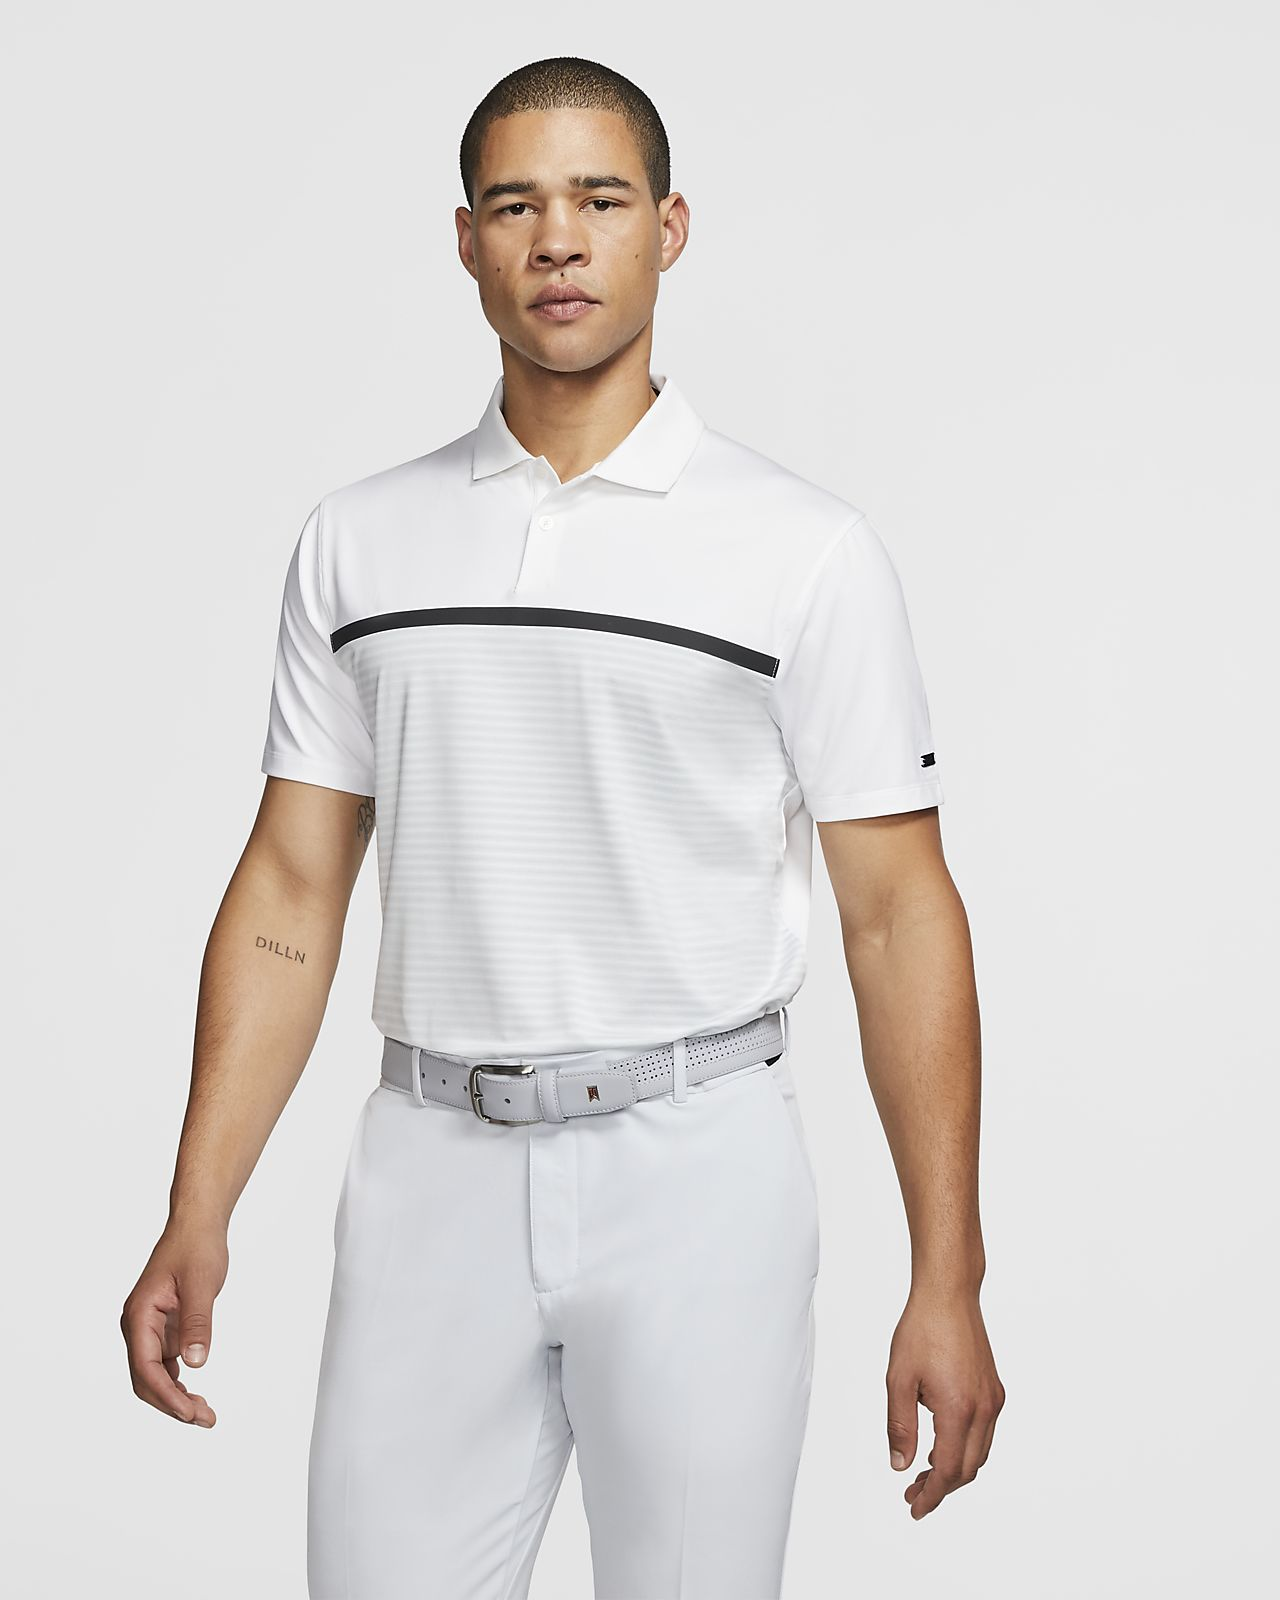 90e0d8b7 Nike Dri-FIT Tiger Woods Vapor Men's Striped Golf Polo. Nike.com LU